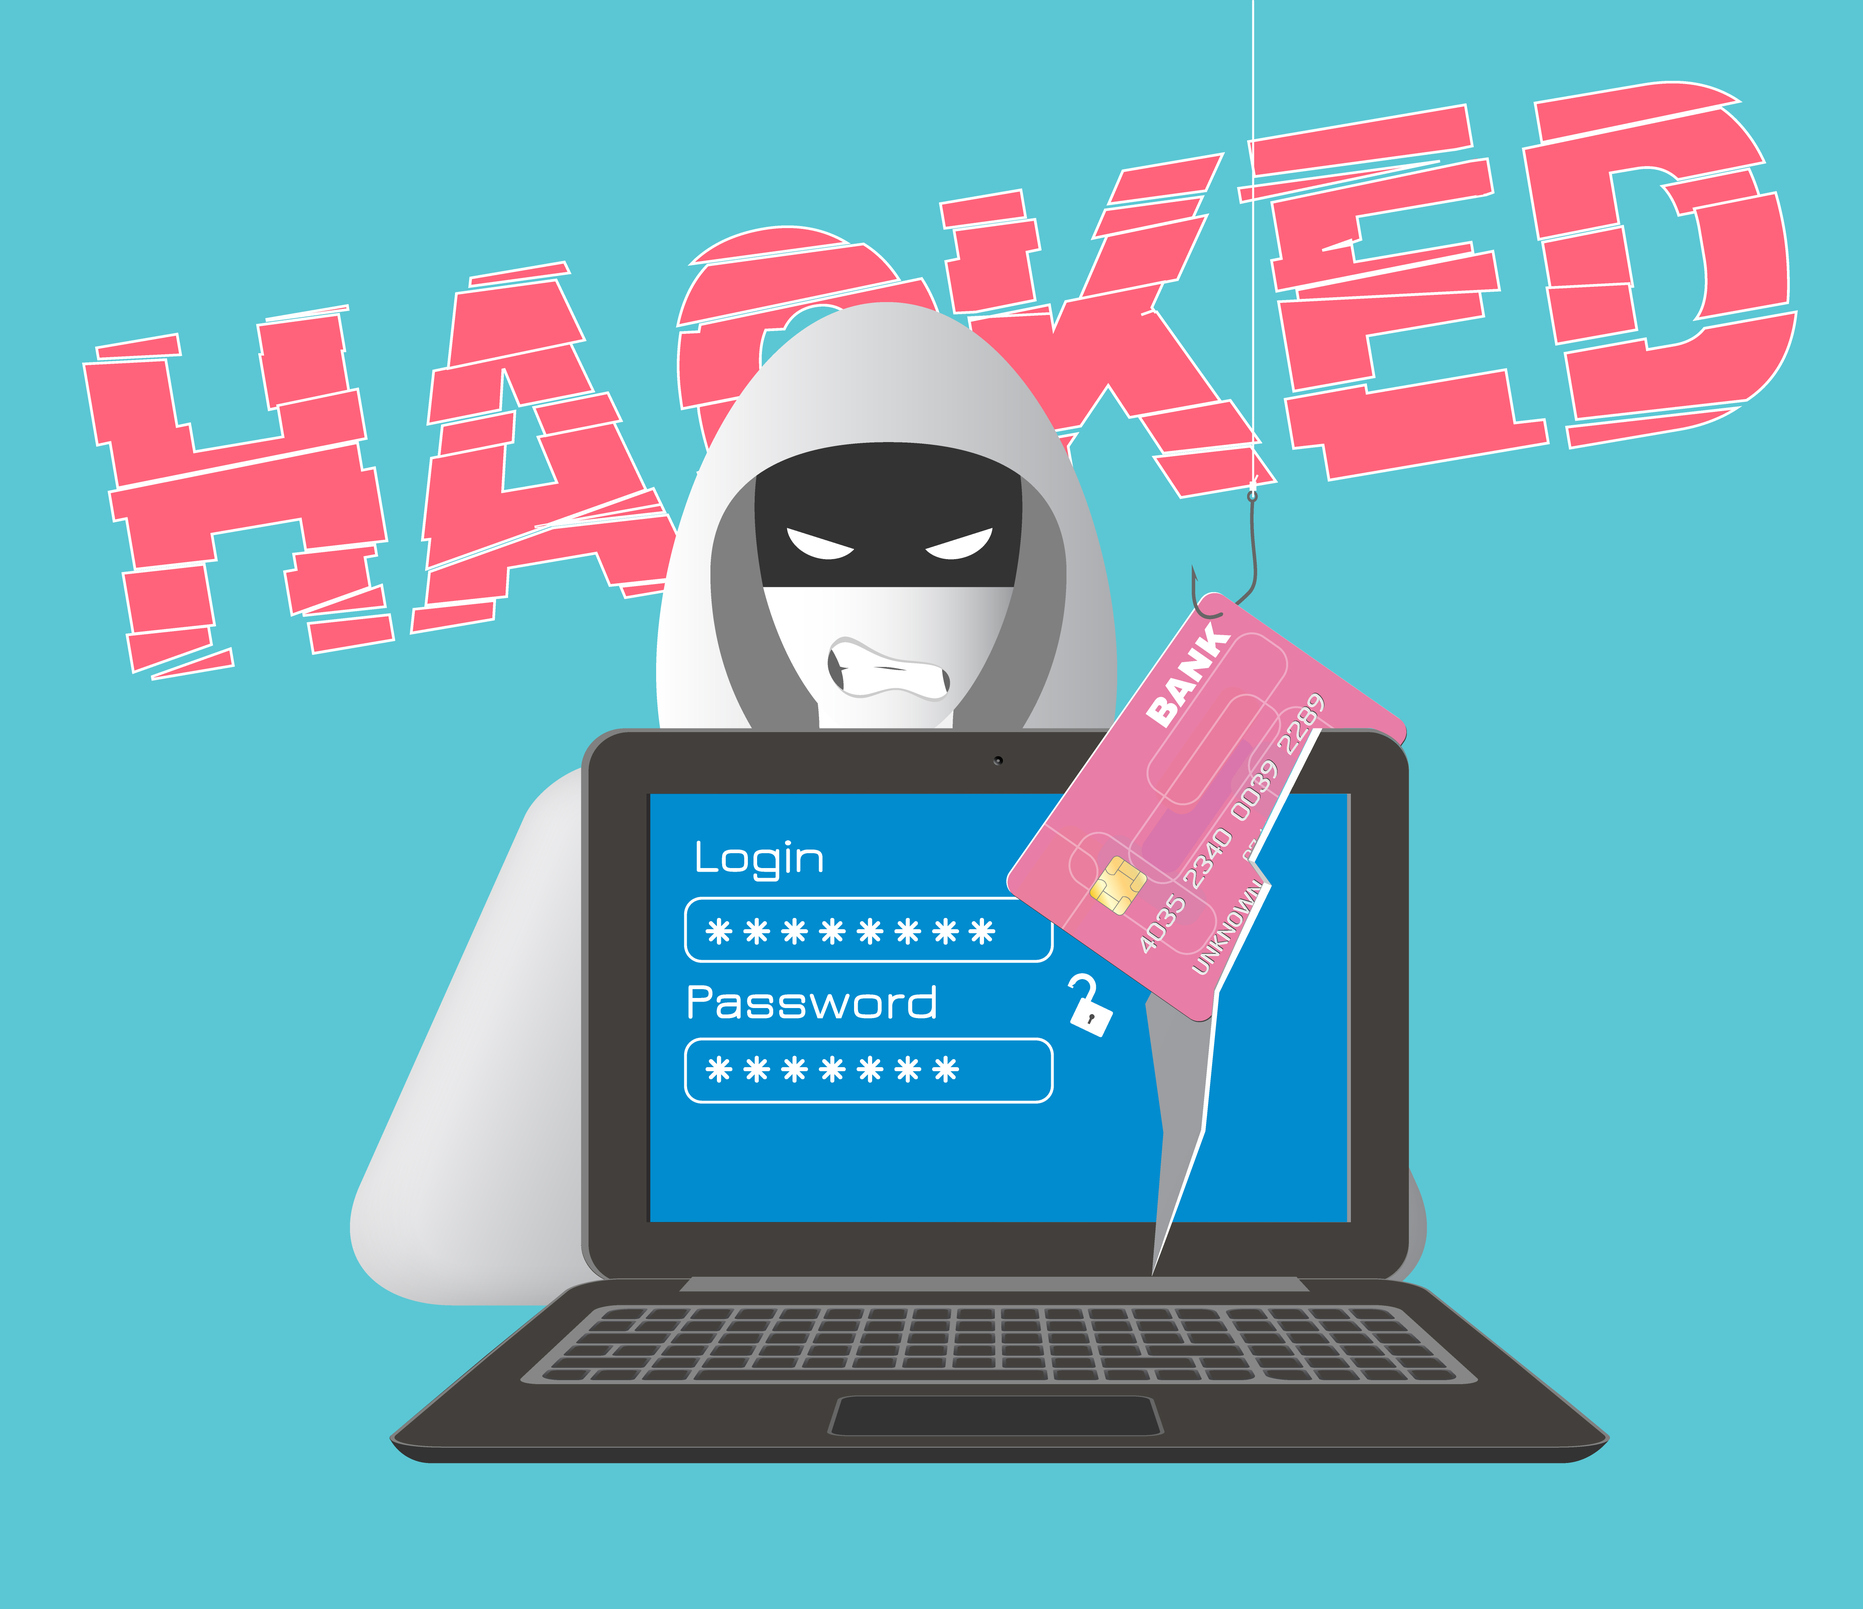 Seven steps to take after your email account is hacked